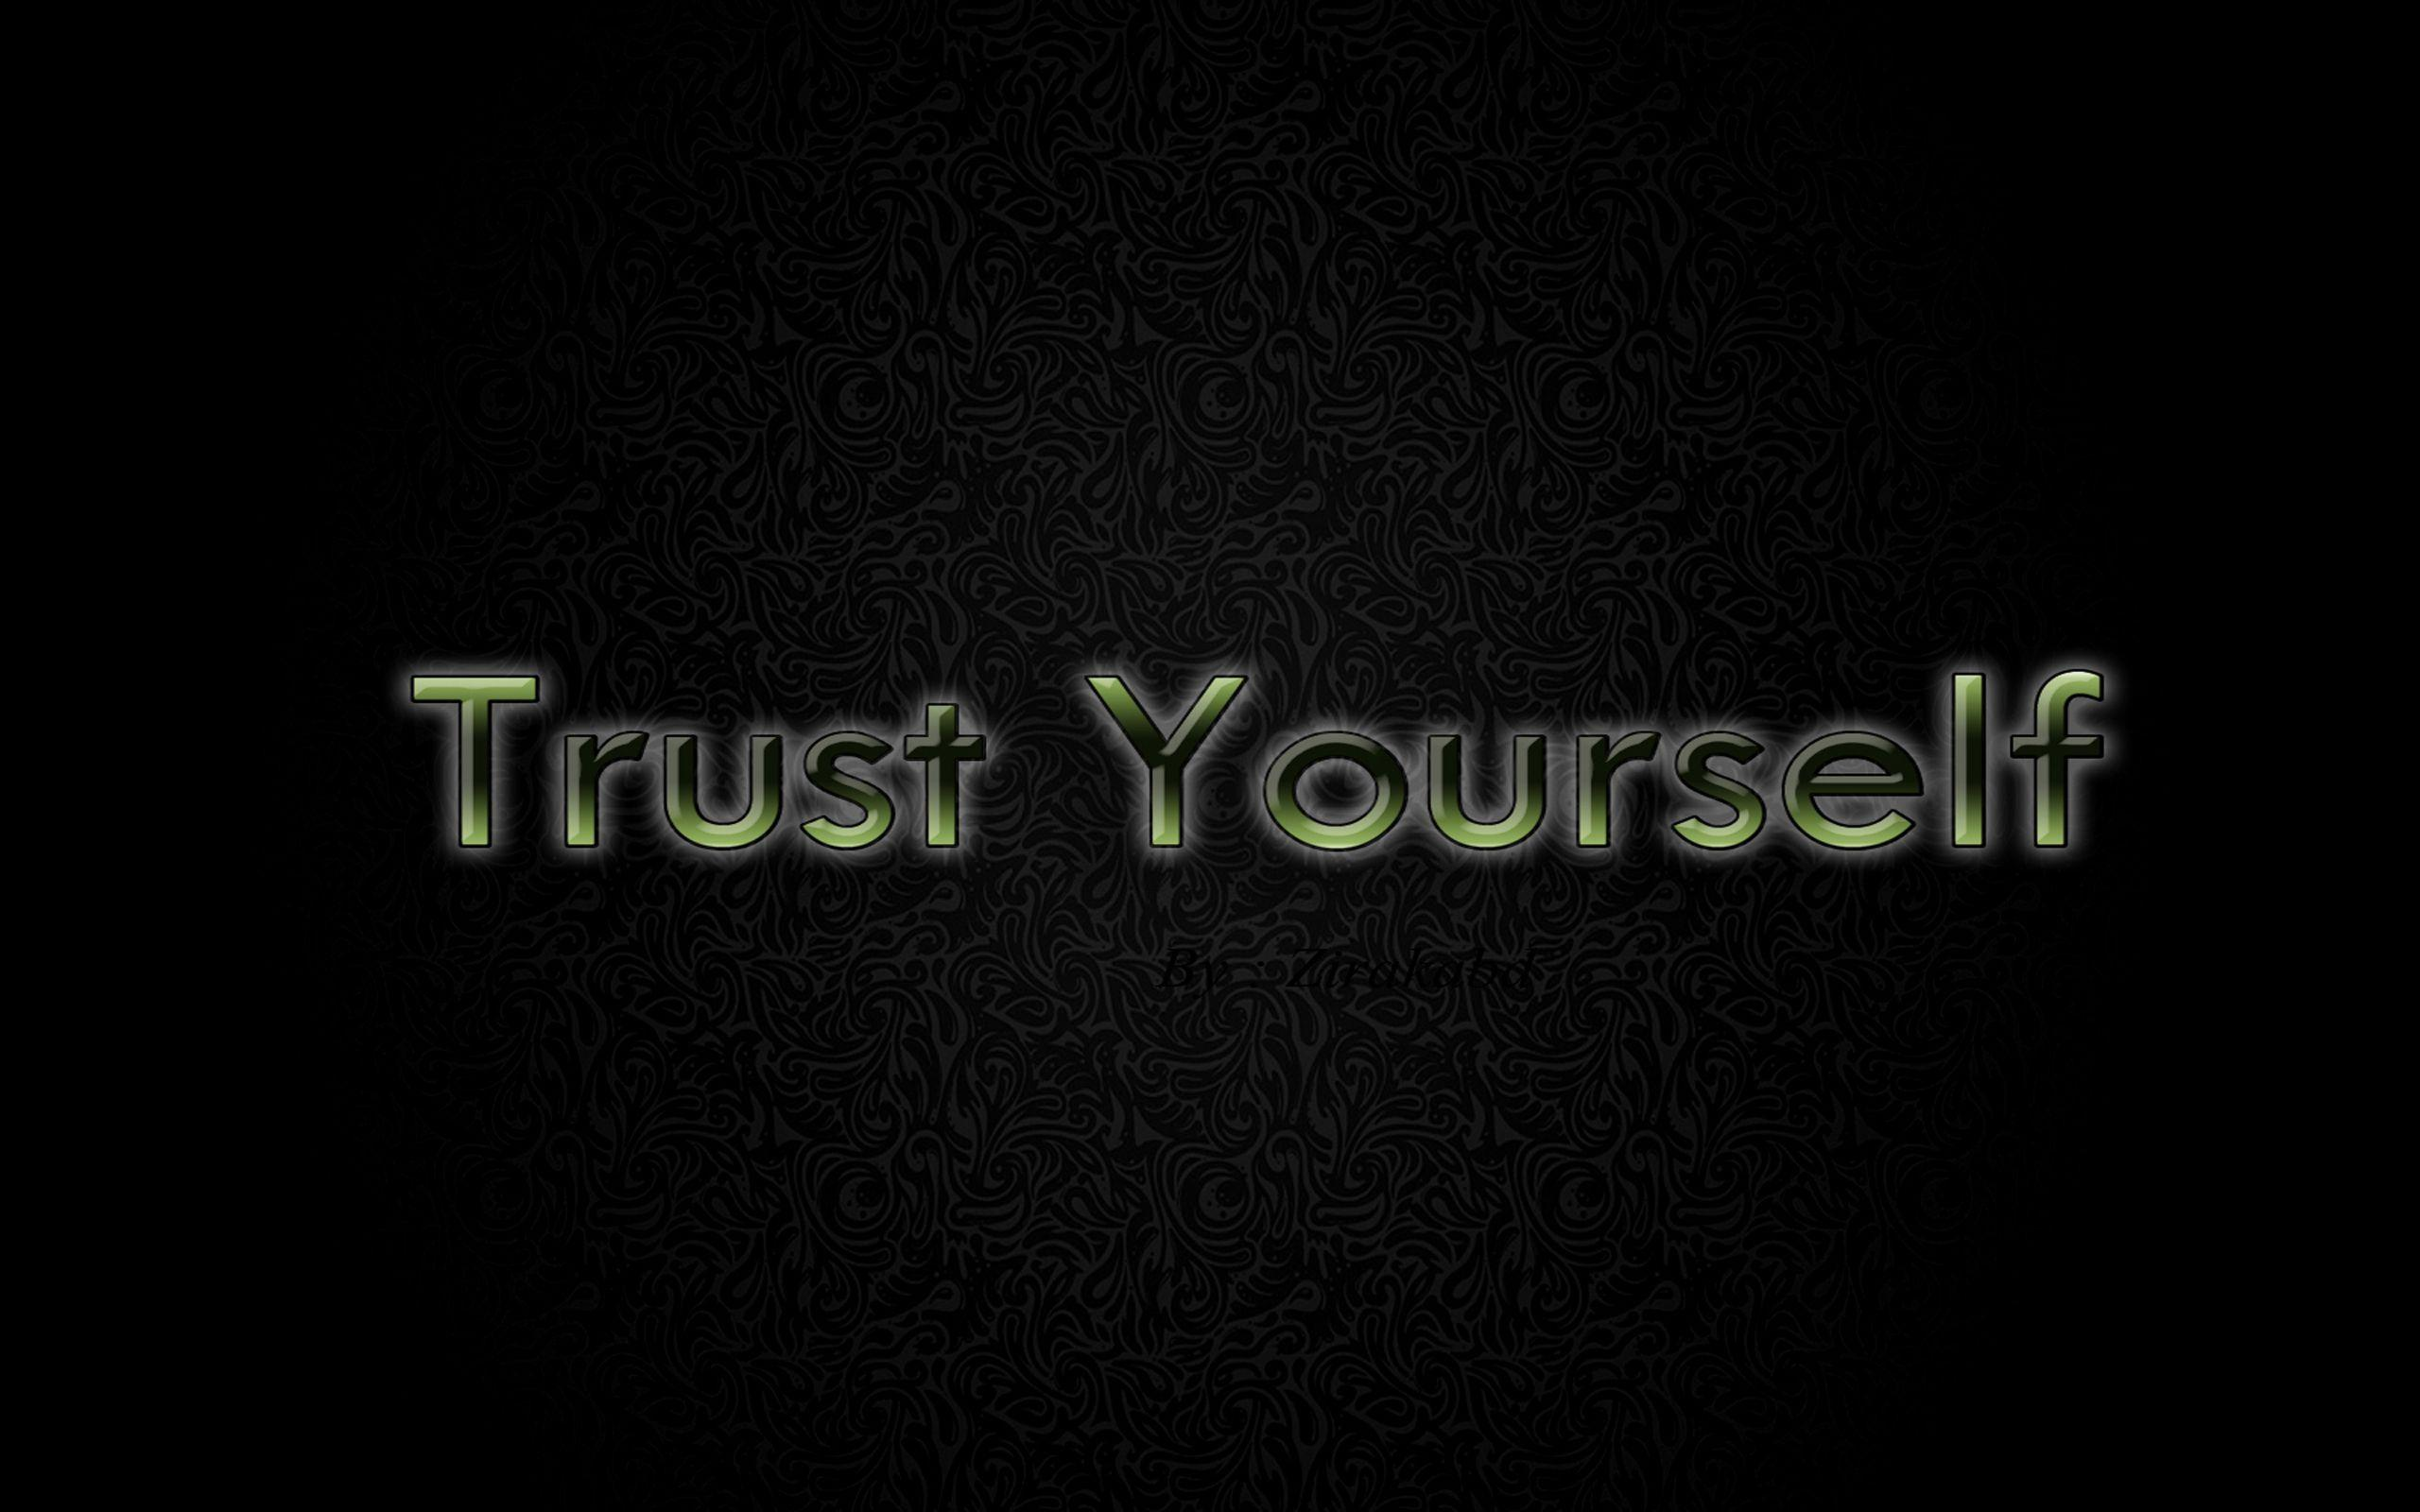 Trust Yourself wallpapers